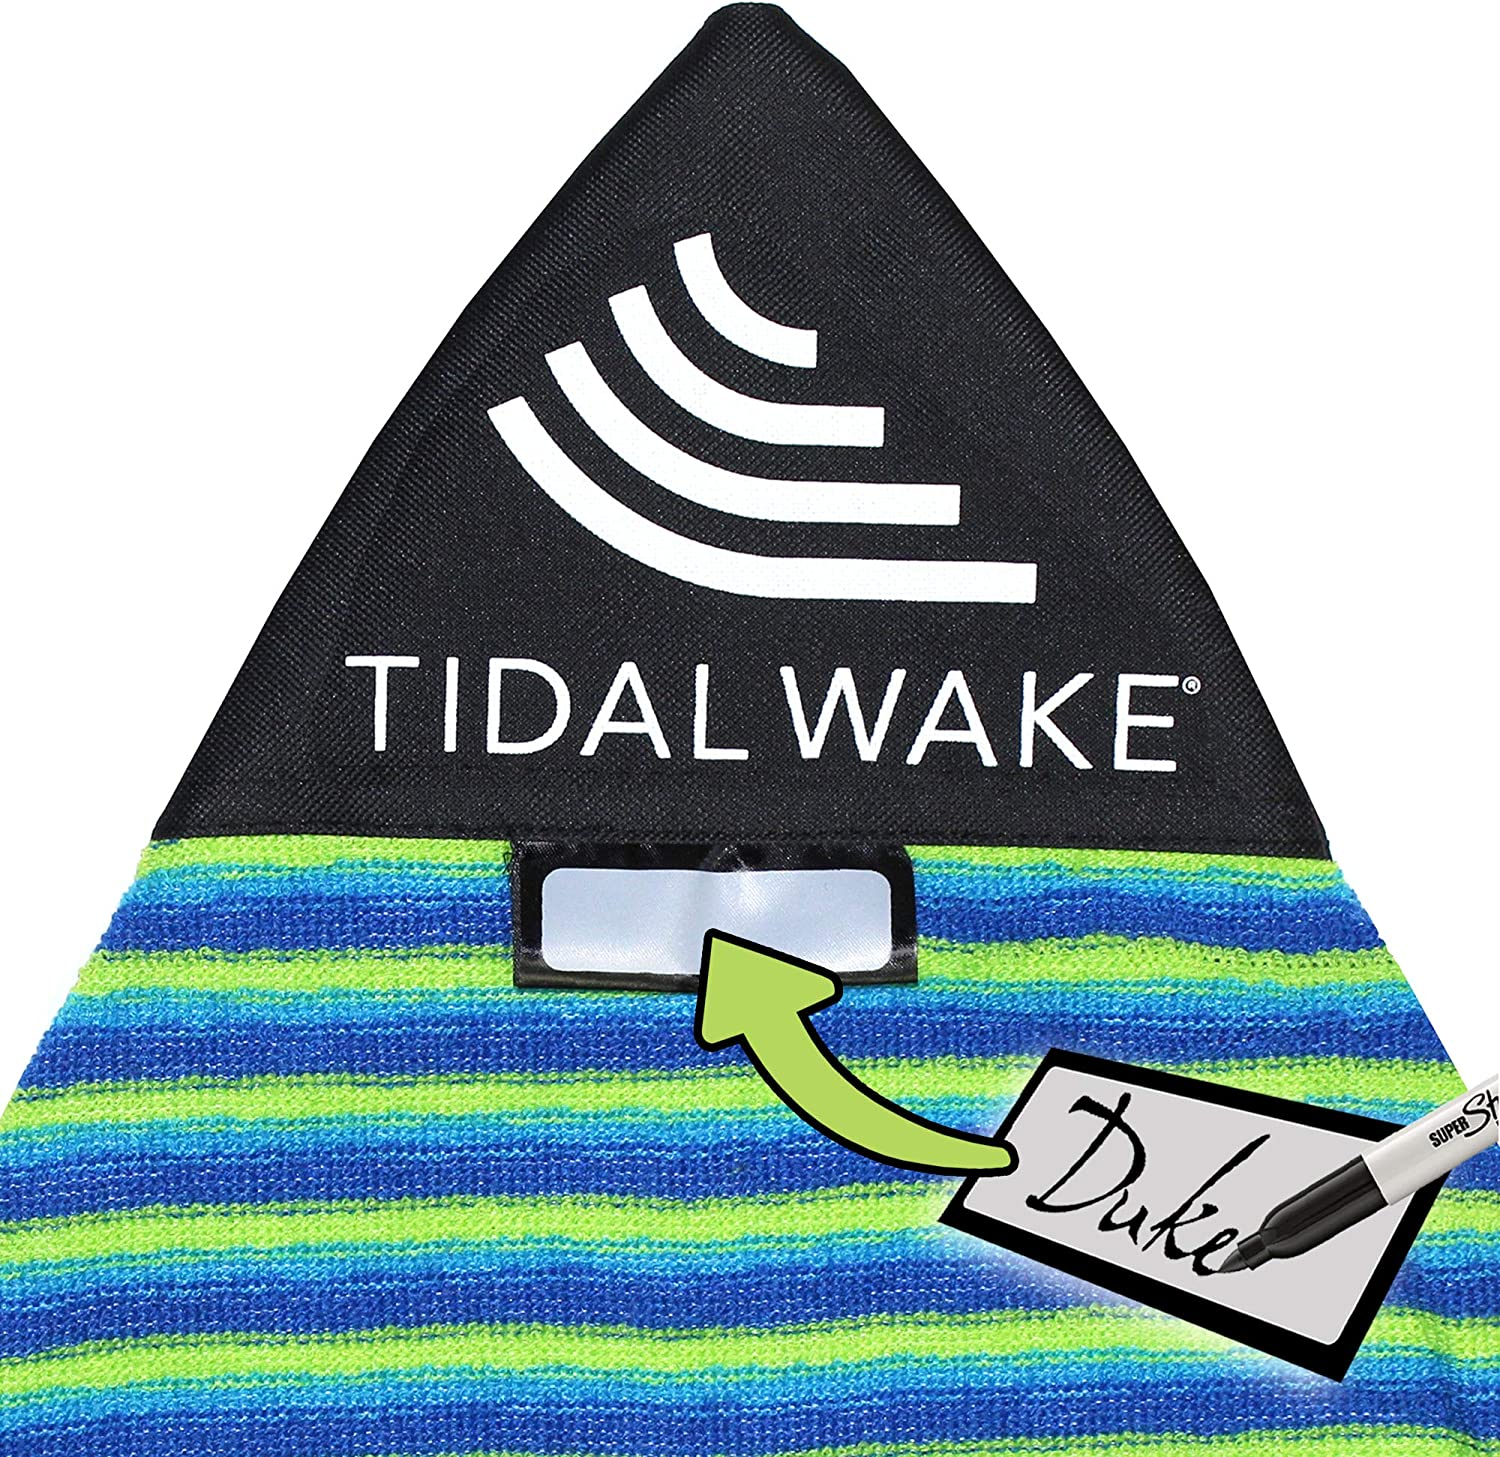 "Tidal Wake TAG-IT Pointed Nose Surf & Wake Board Sock Bag with Built-in Name Tag, Personalize - Small 52-53"", Tag Your Bag (Green & Blue Striped)"